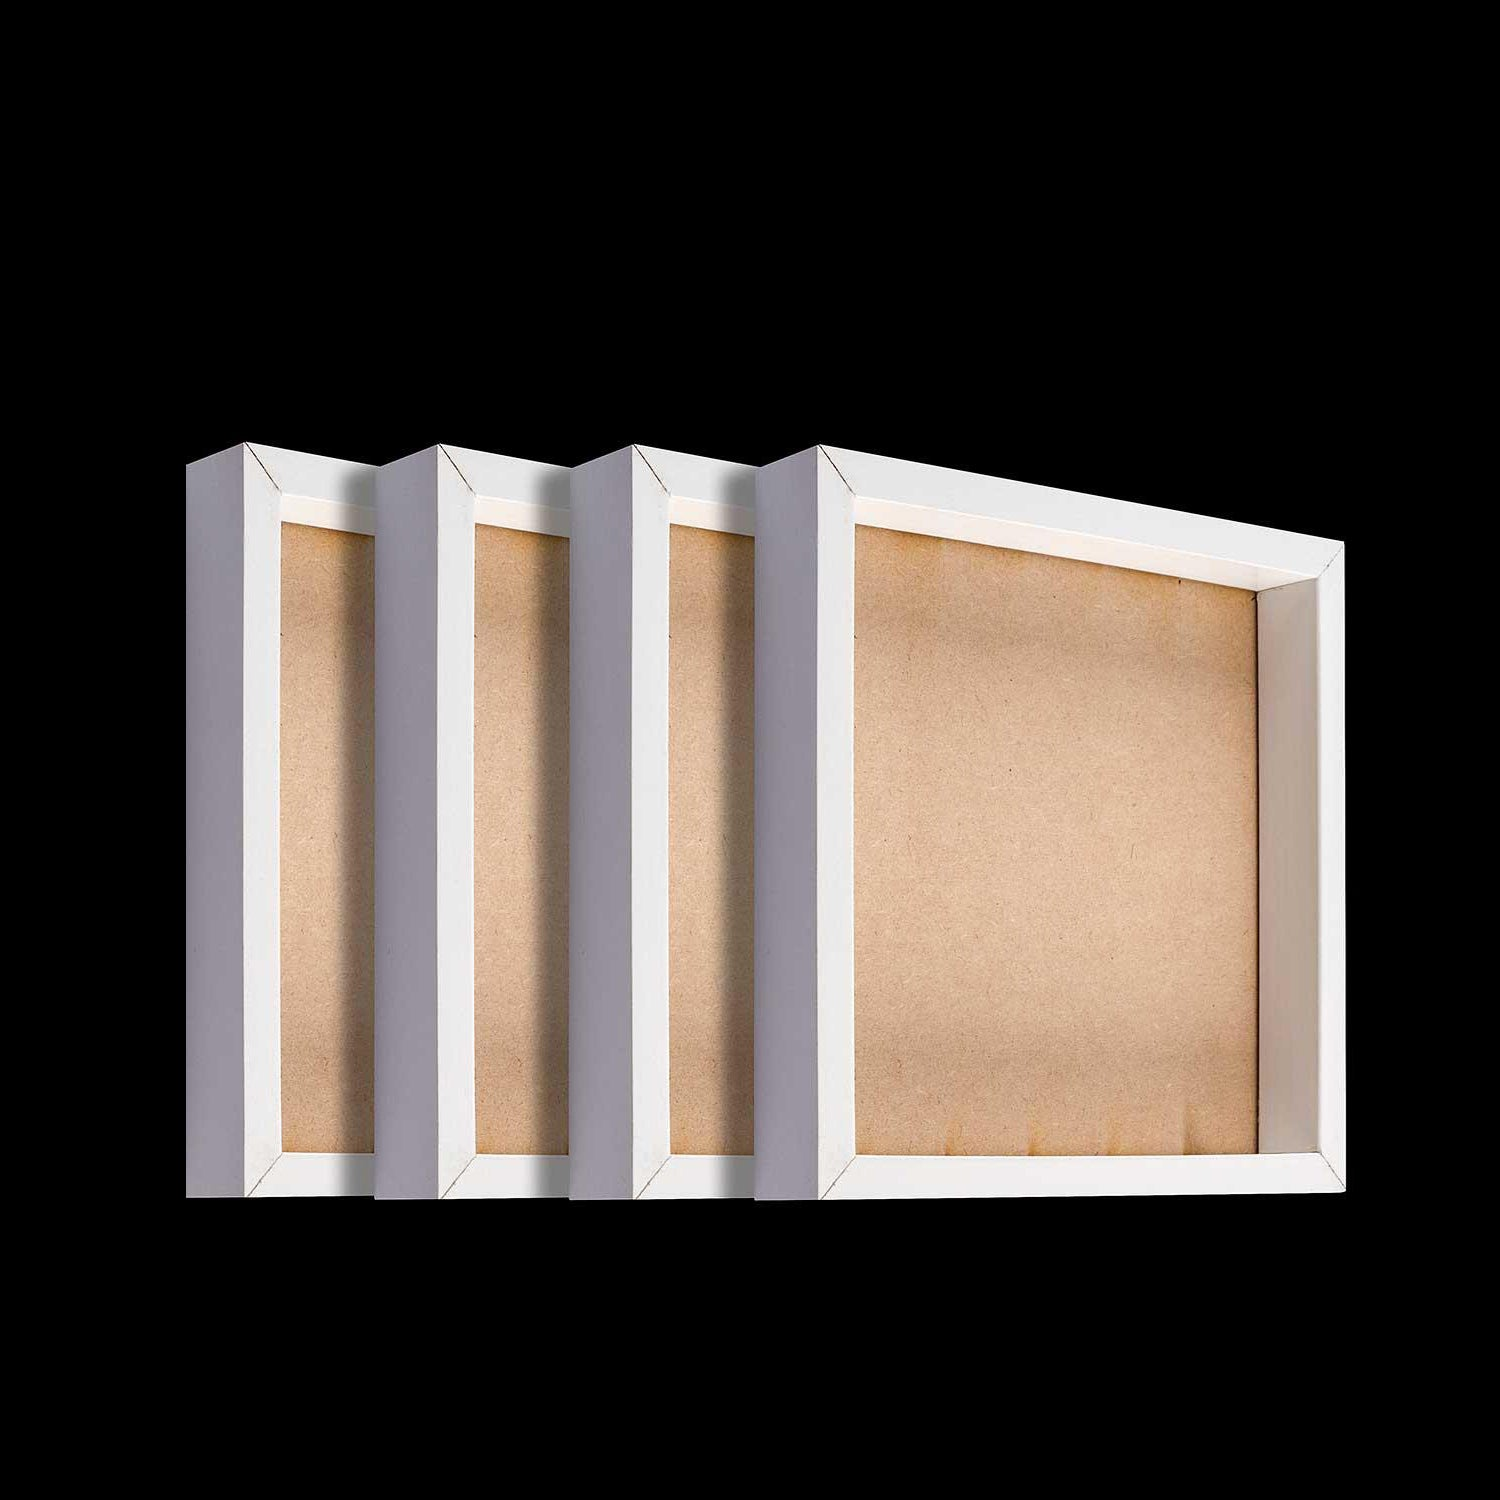 Set of 4 White Shadow Frames - 19.5 x 19.5cm Each